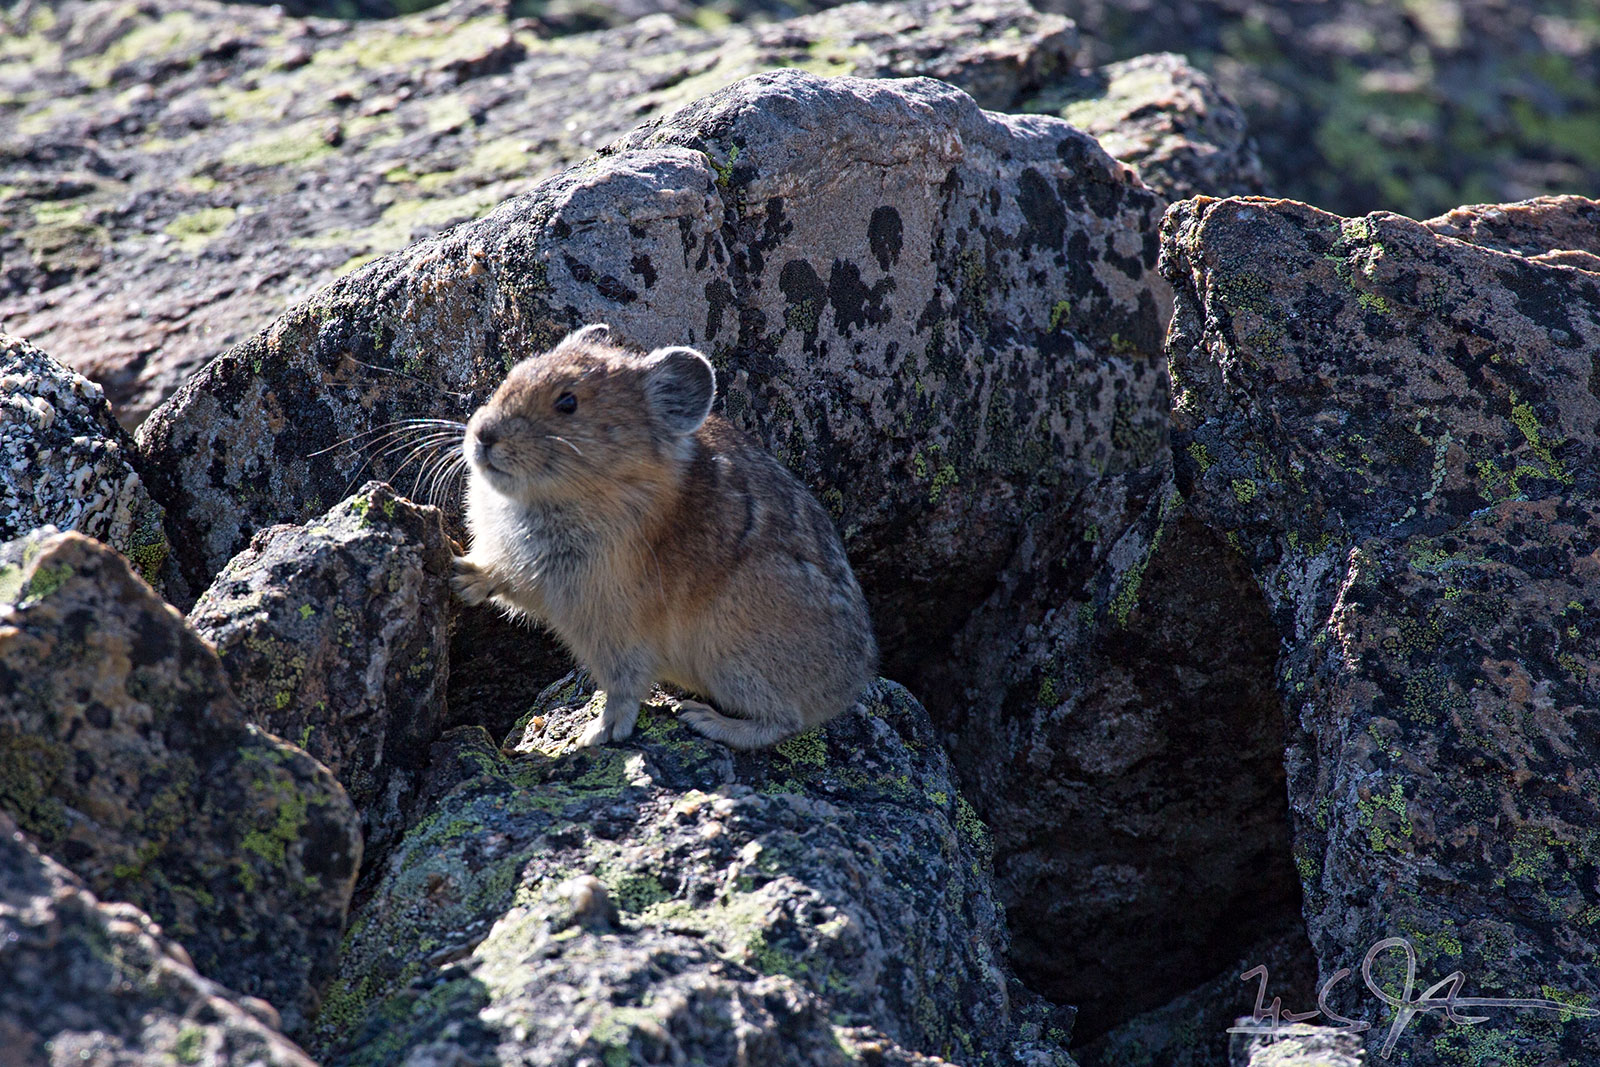 A rock rabbit, or Pica.